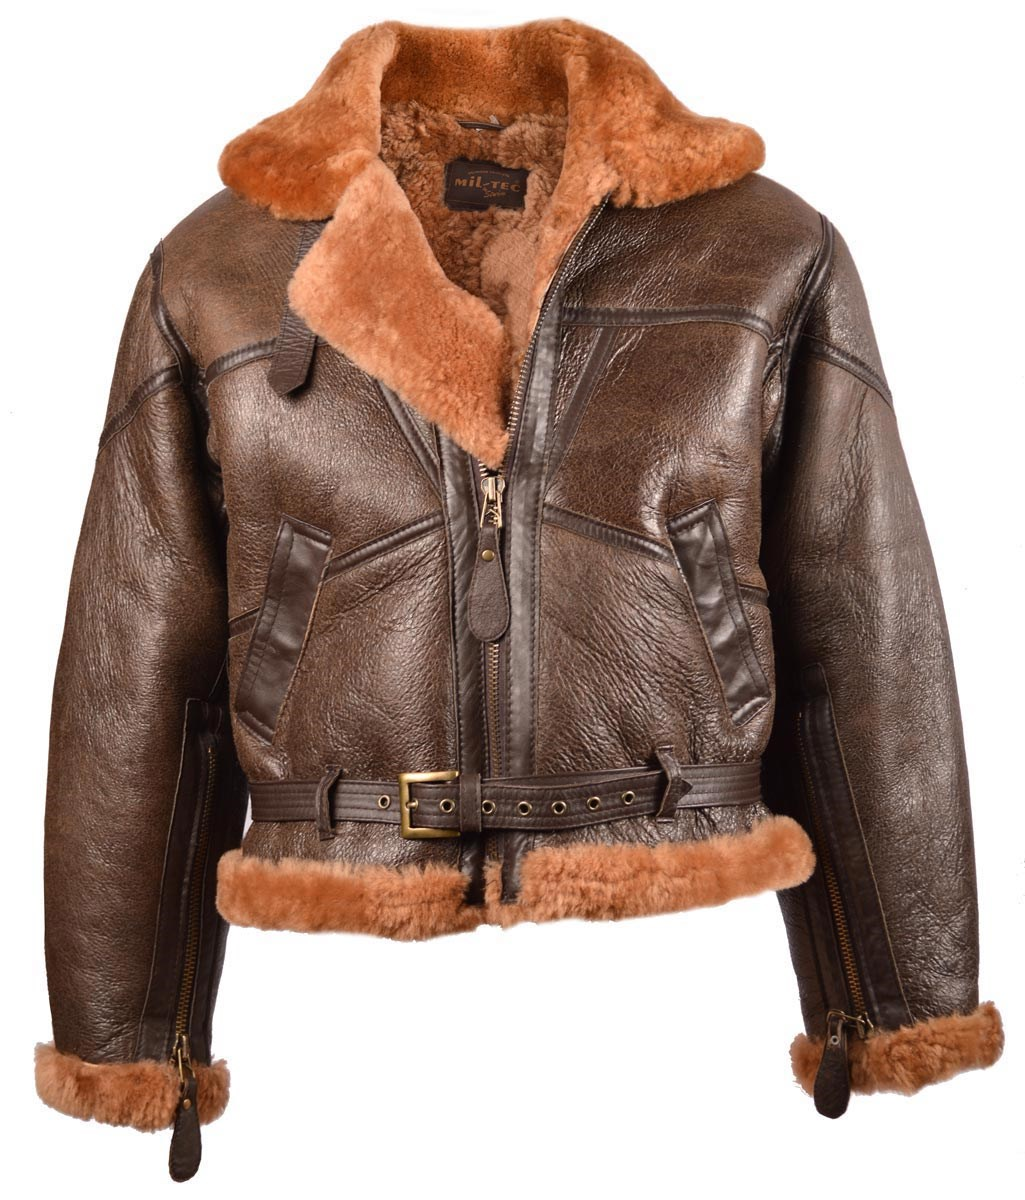 UK leather jacket with collar RAF BOMBER BROWN MIL-TEC® 10451009 L-11